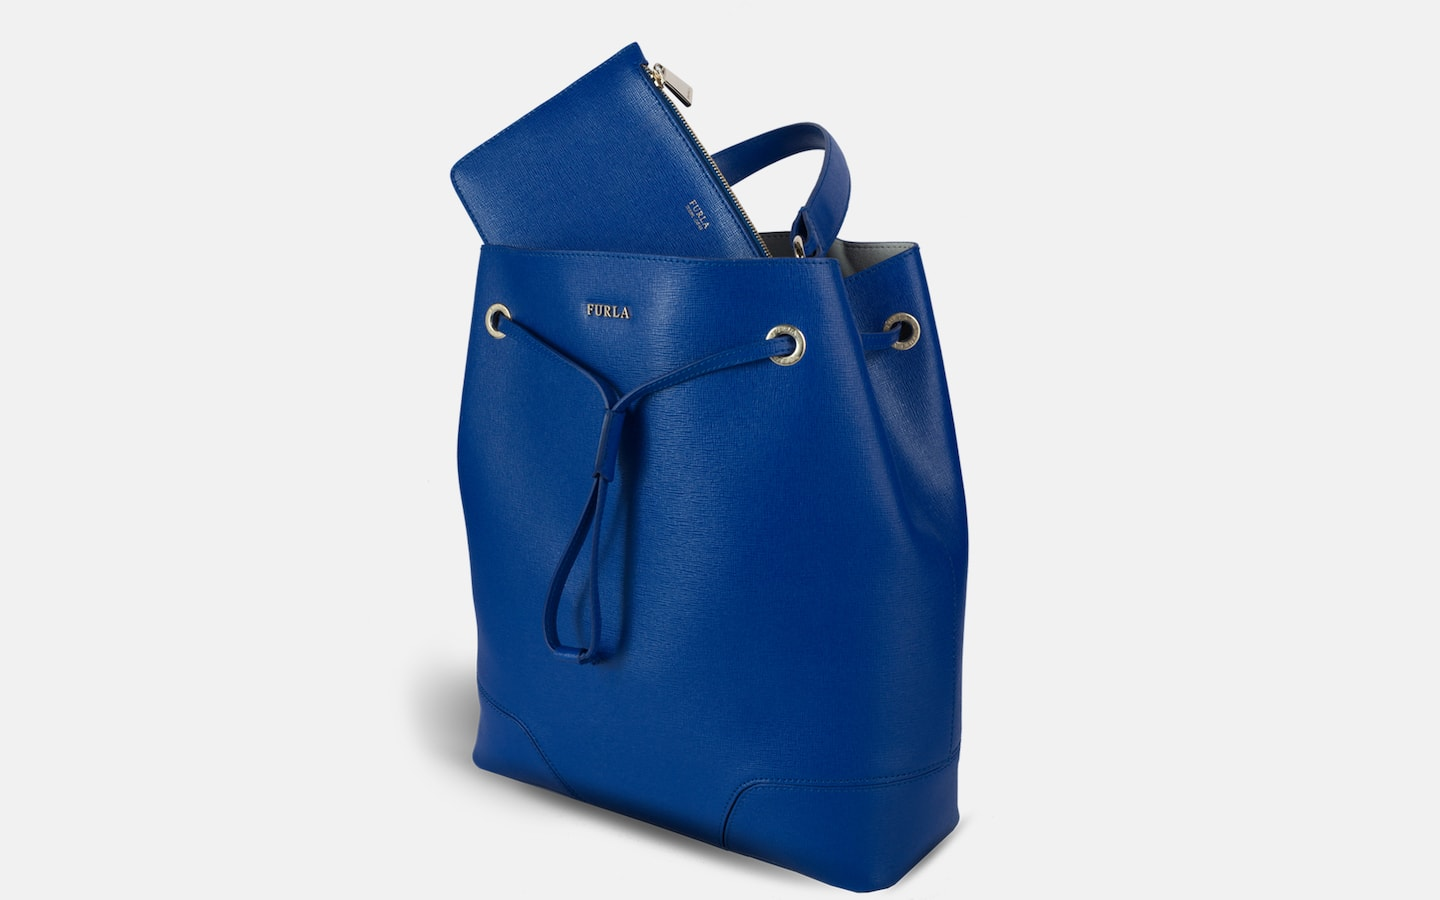 furla-stacy-blueeee-min